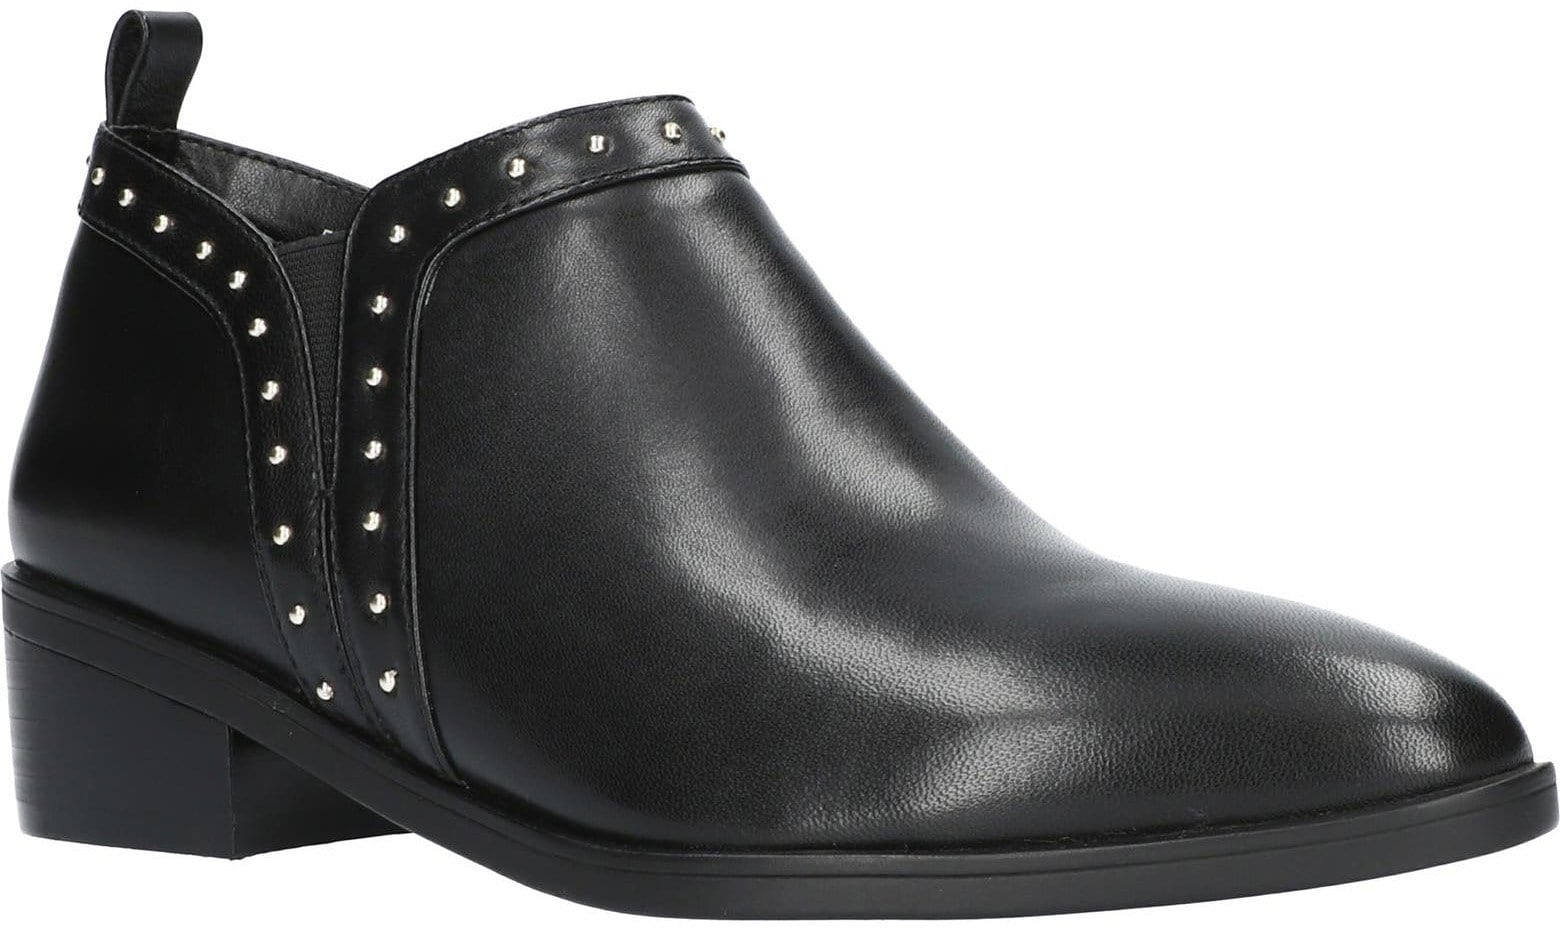 Tiny silver studs add edge to this versatile ankle bootie with gore insets and a low stacked heel for all-day comfort